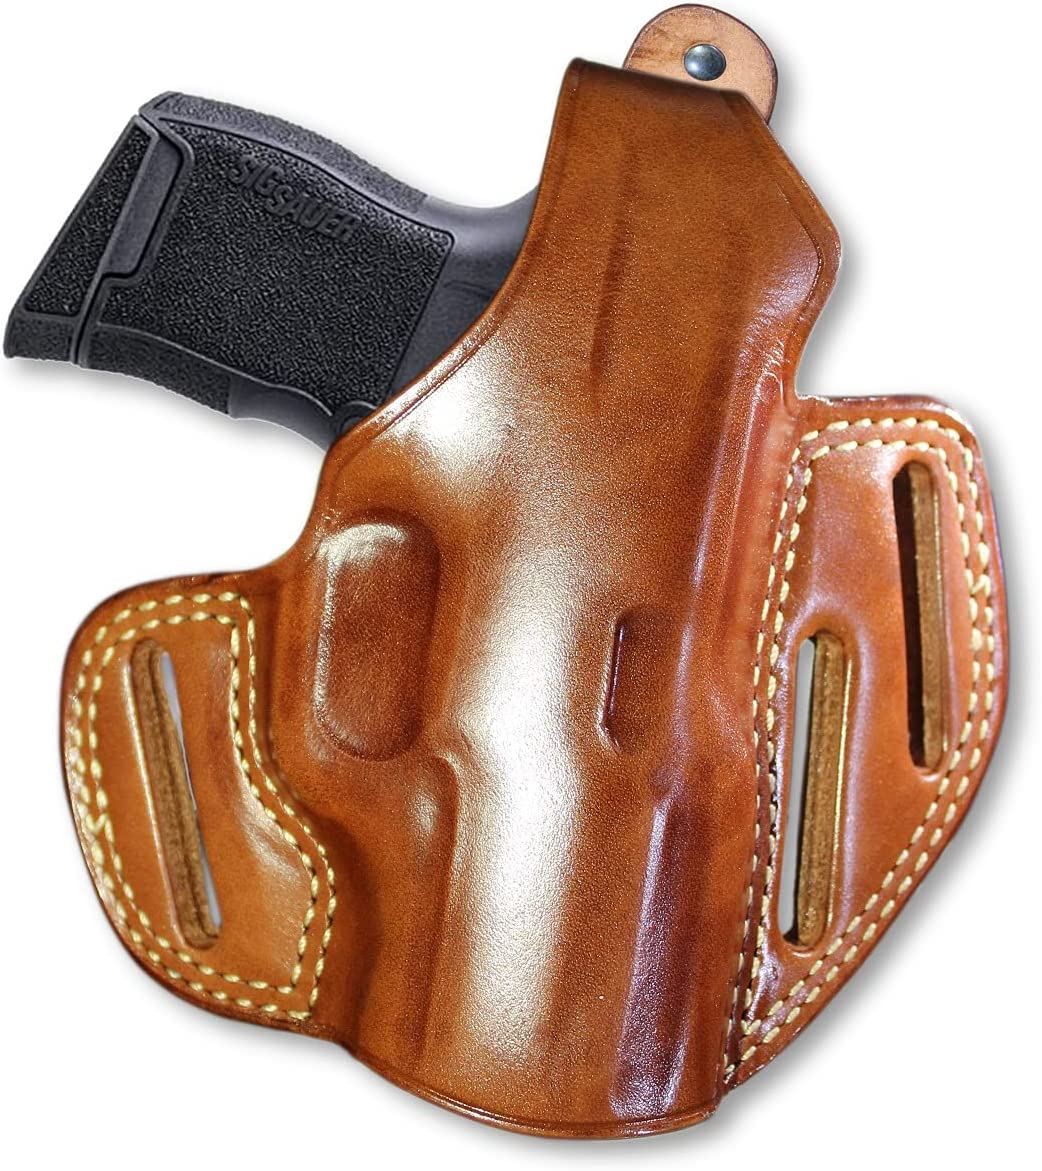 Outstanding Premium Leather OWB Three Slot Pancake Chicago Mall Holster Break with Thumb